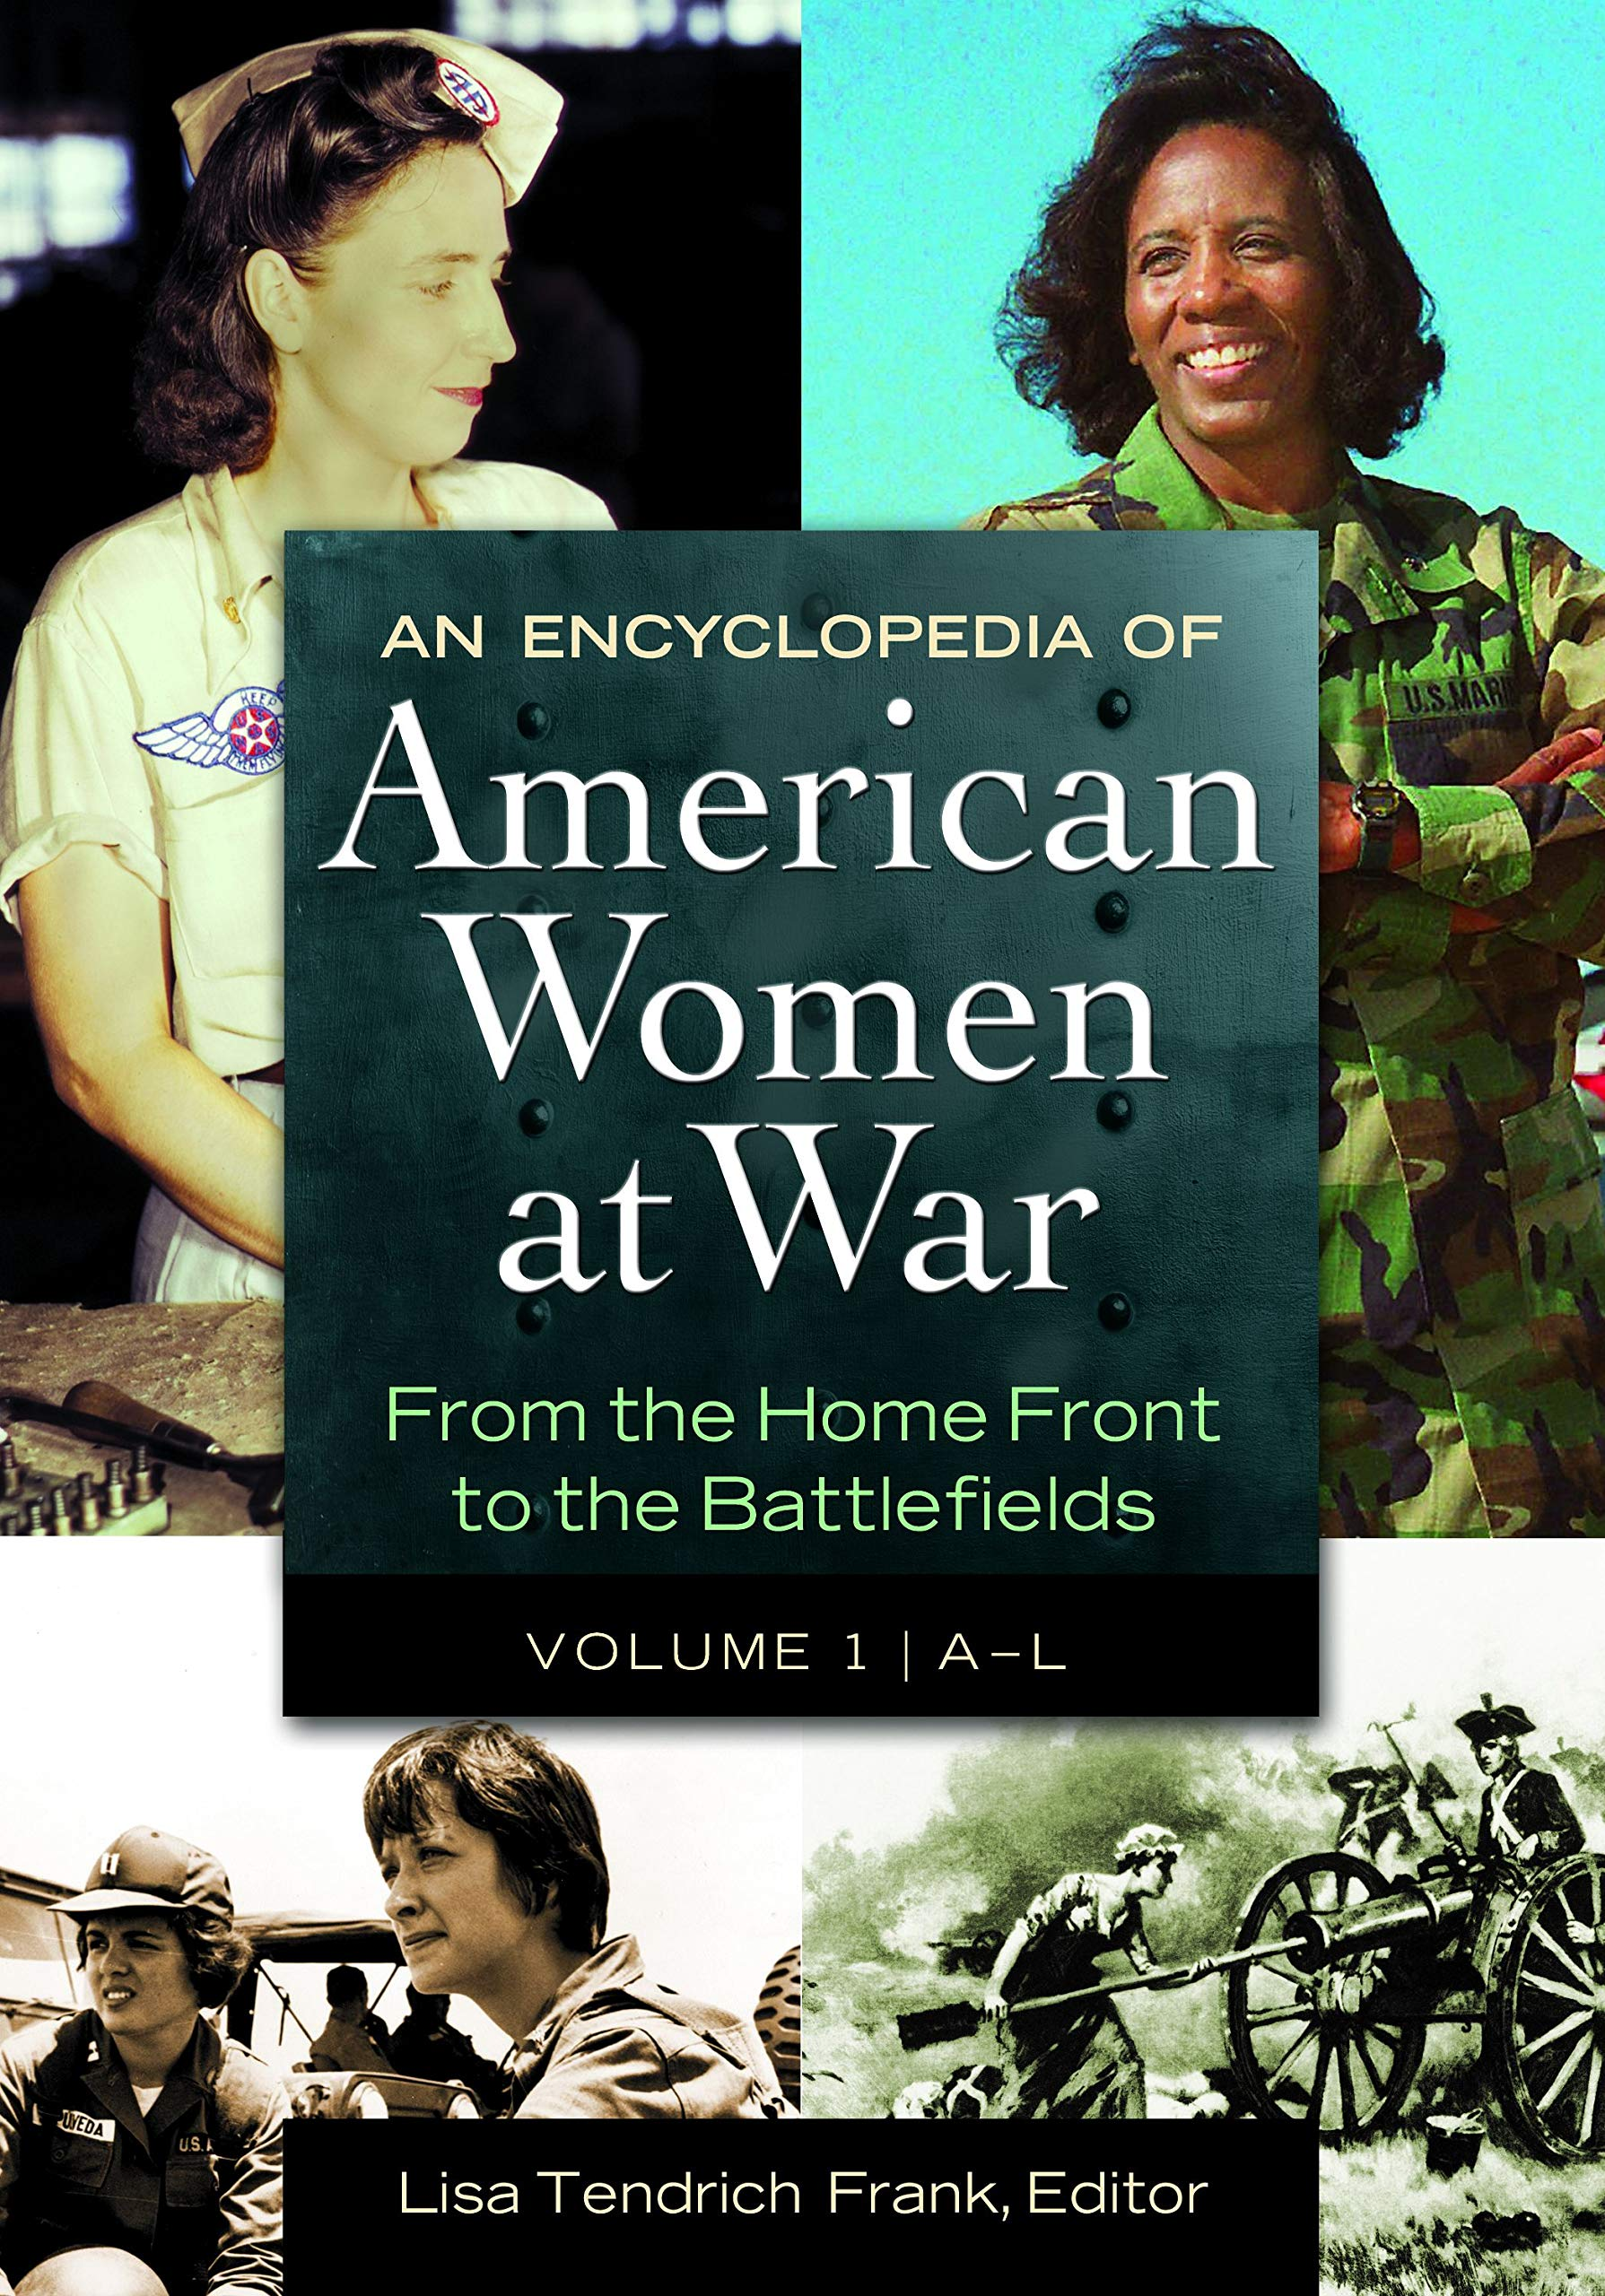 An Encyclopedia of American Women at War [2 volumes]: From the Home Front to the Battlefields by Brand: ABC-CLIO